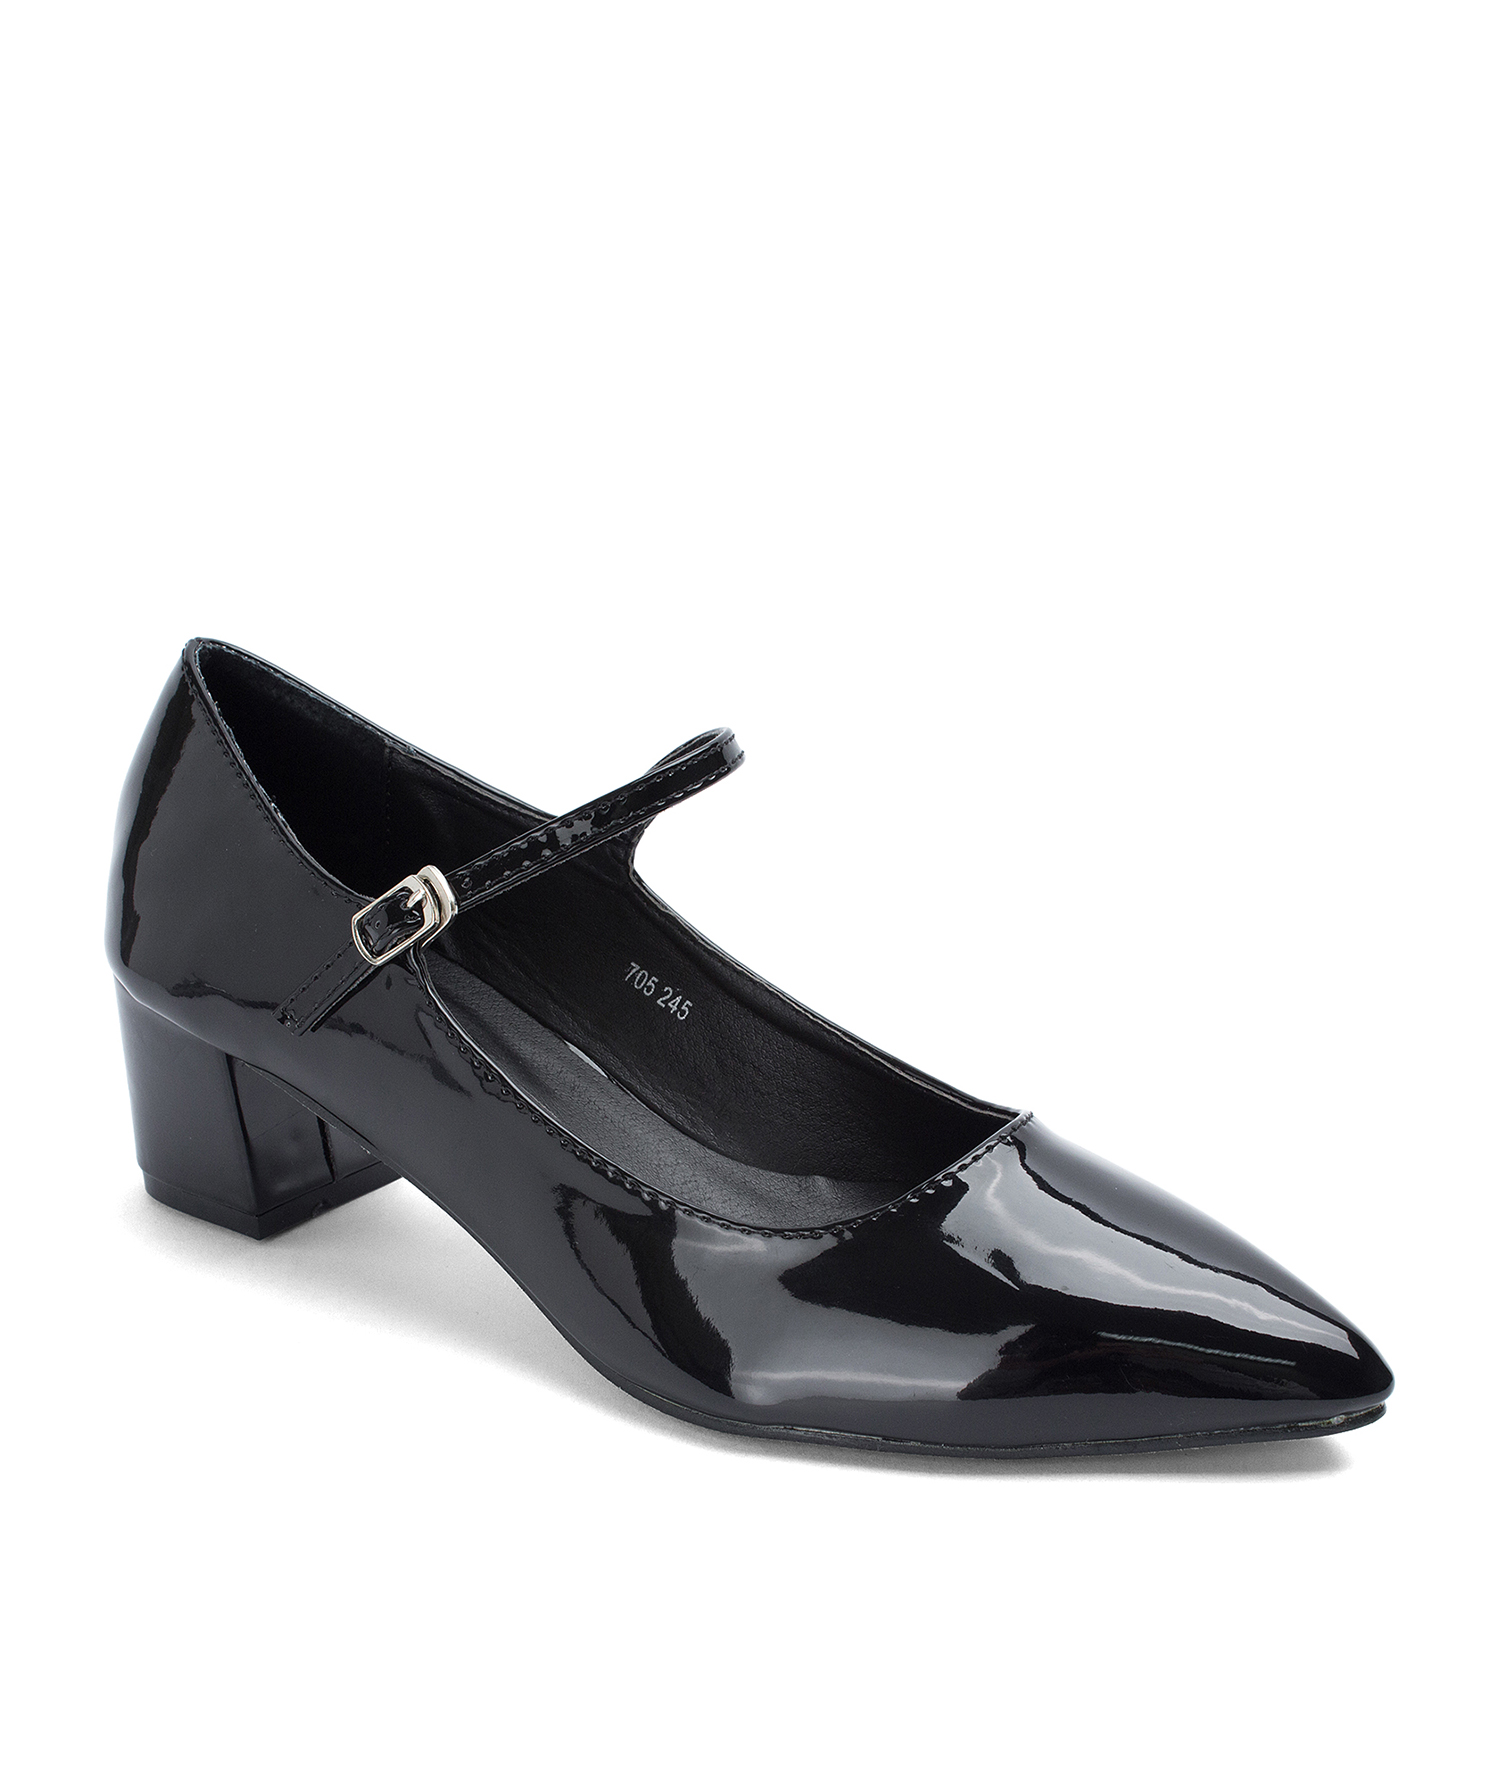 AnnaKastle Pointed Toe Patent Mary Jane Pumps Black